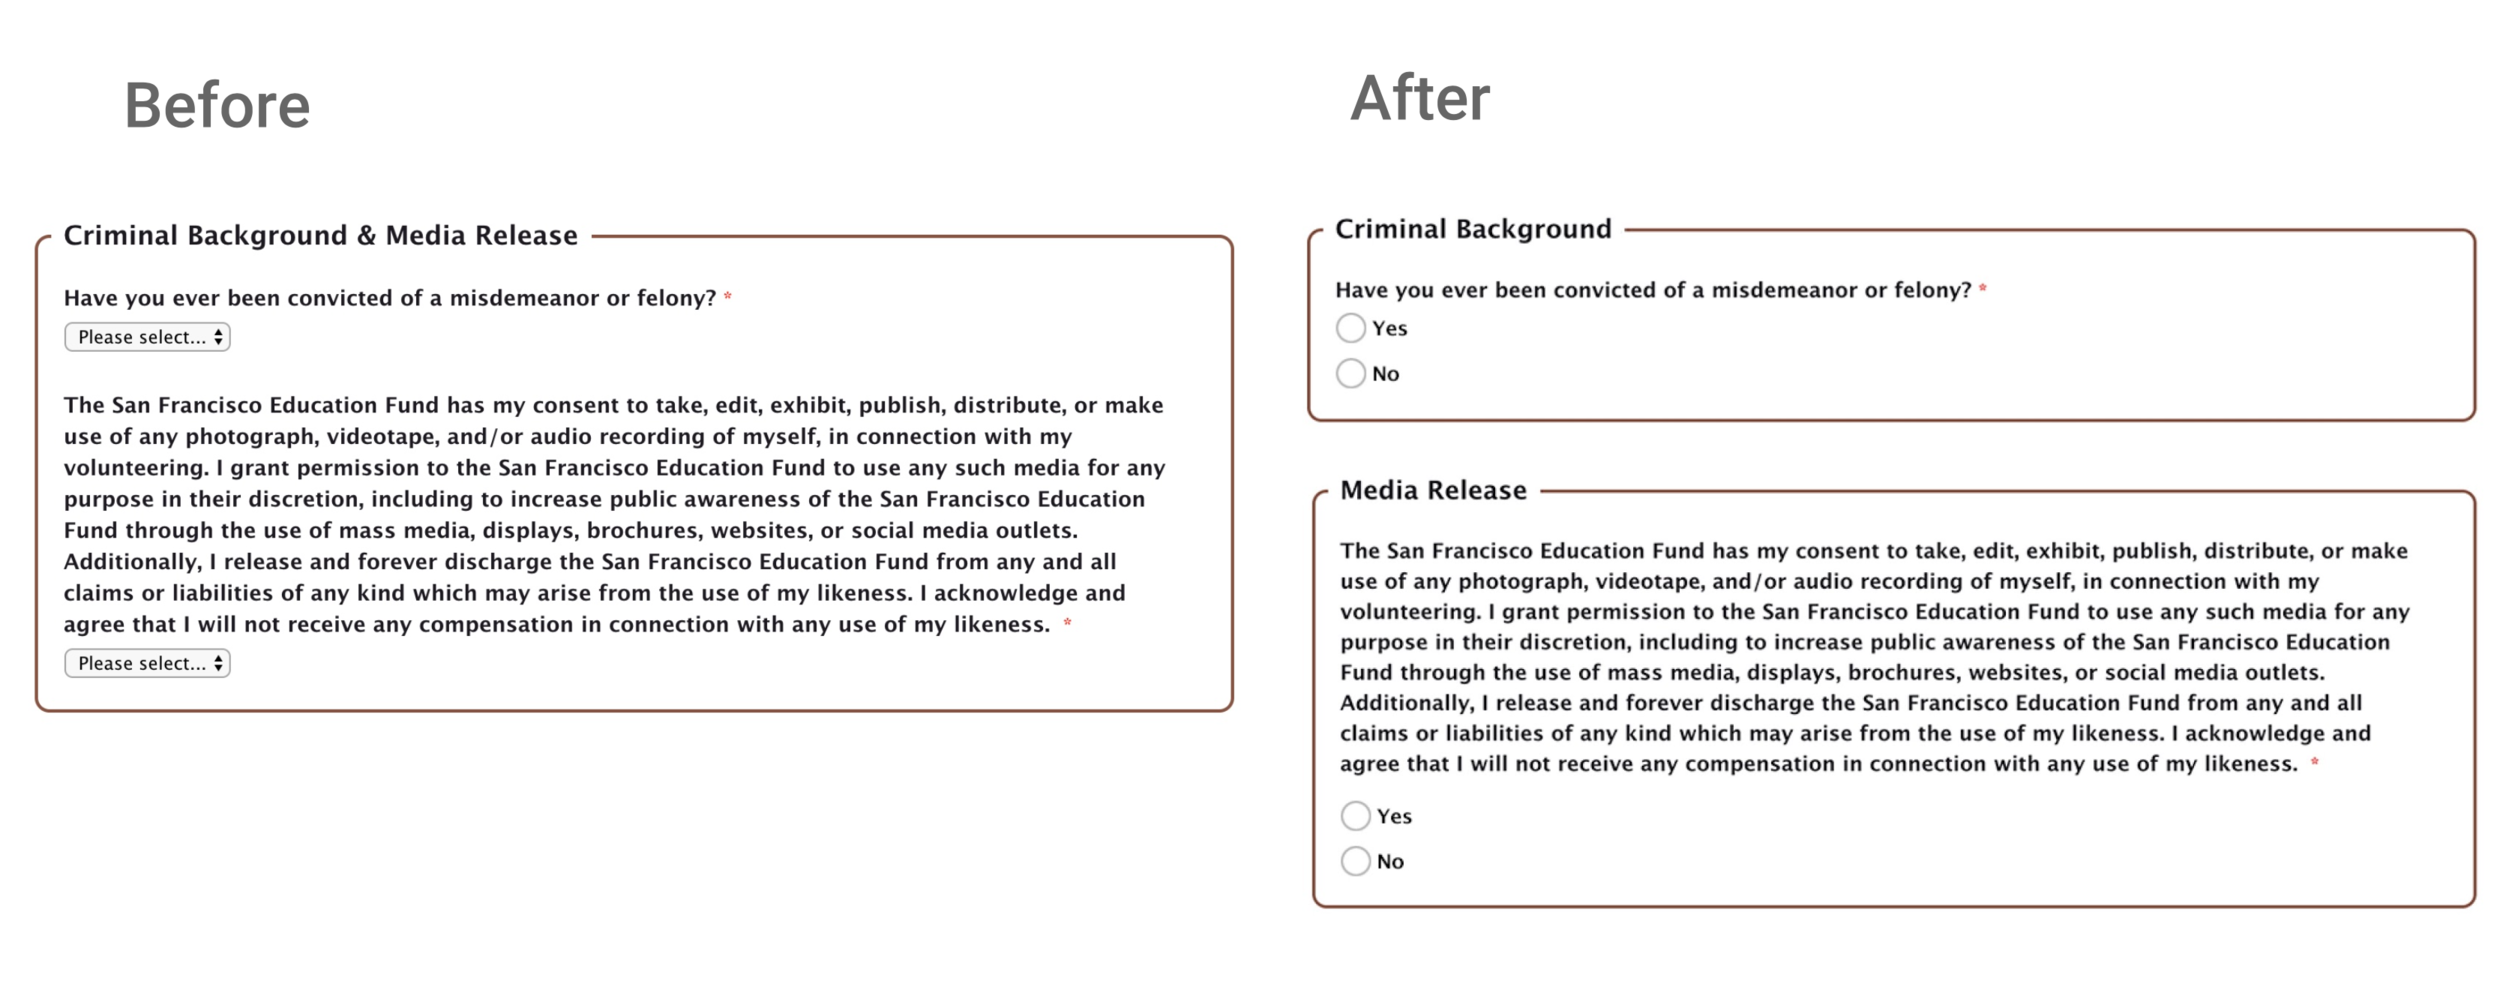 "We split content by topic. Here we split ""criminal background & media release"" into two sections because they are not related and don't serve the same purpose. We also added radio buttons since the questions are binary questions."